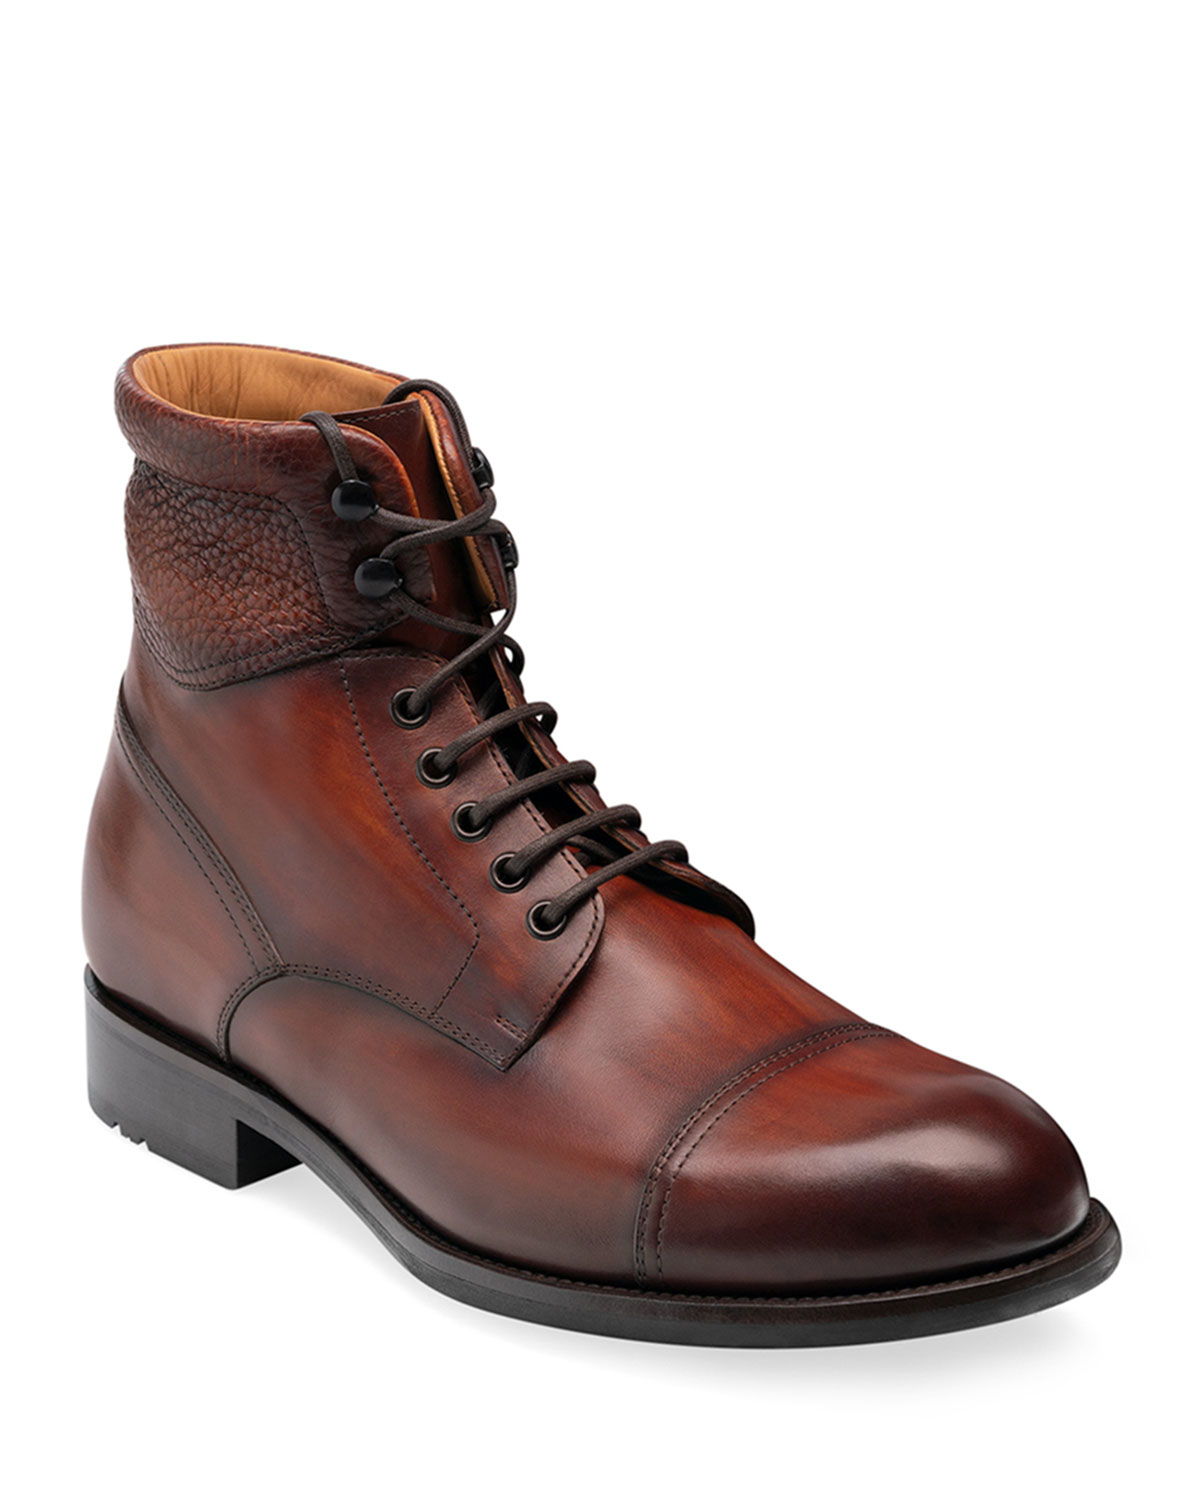 Men's Peyton II Burnished Leather Lace-Up Boots